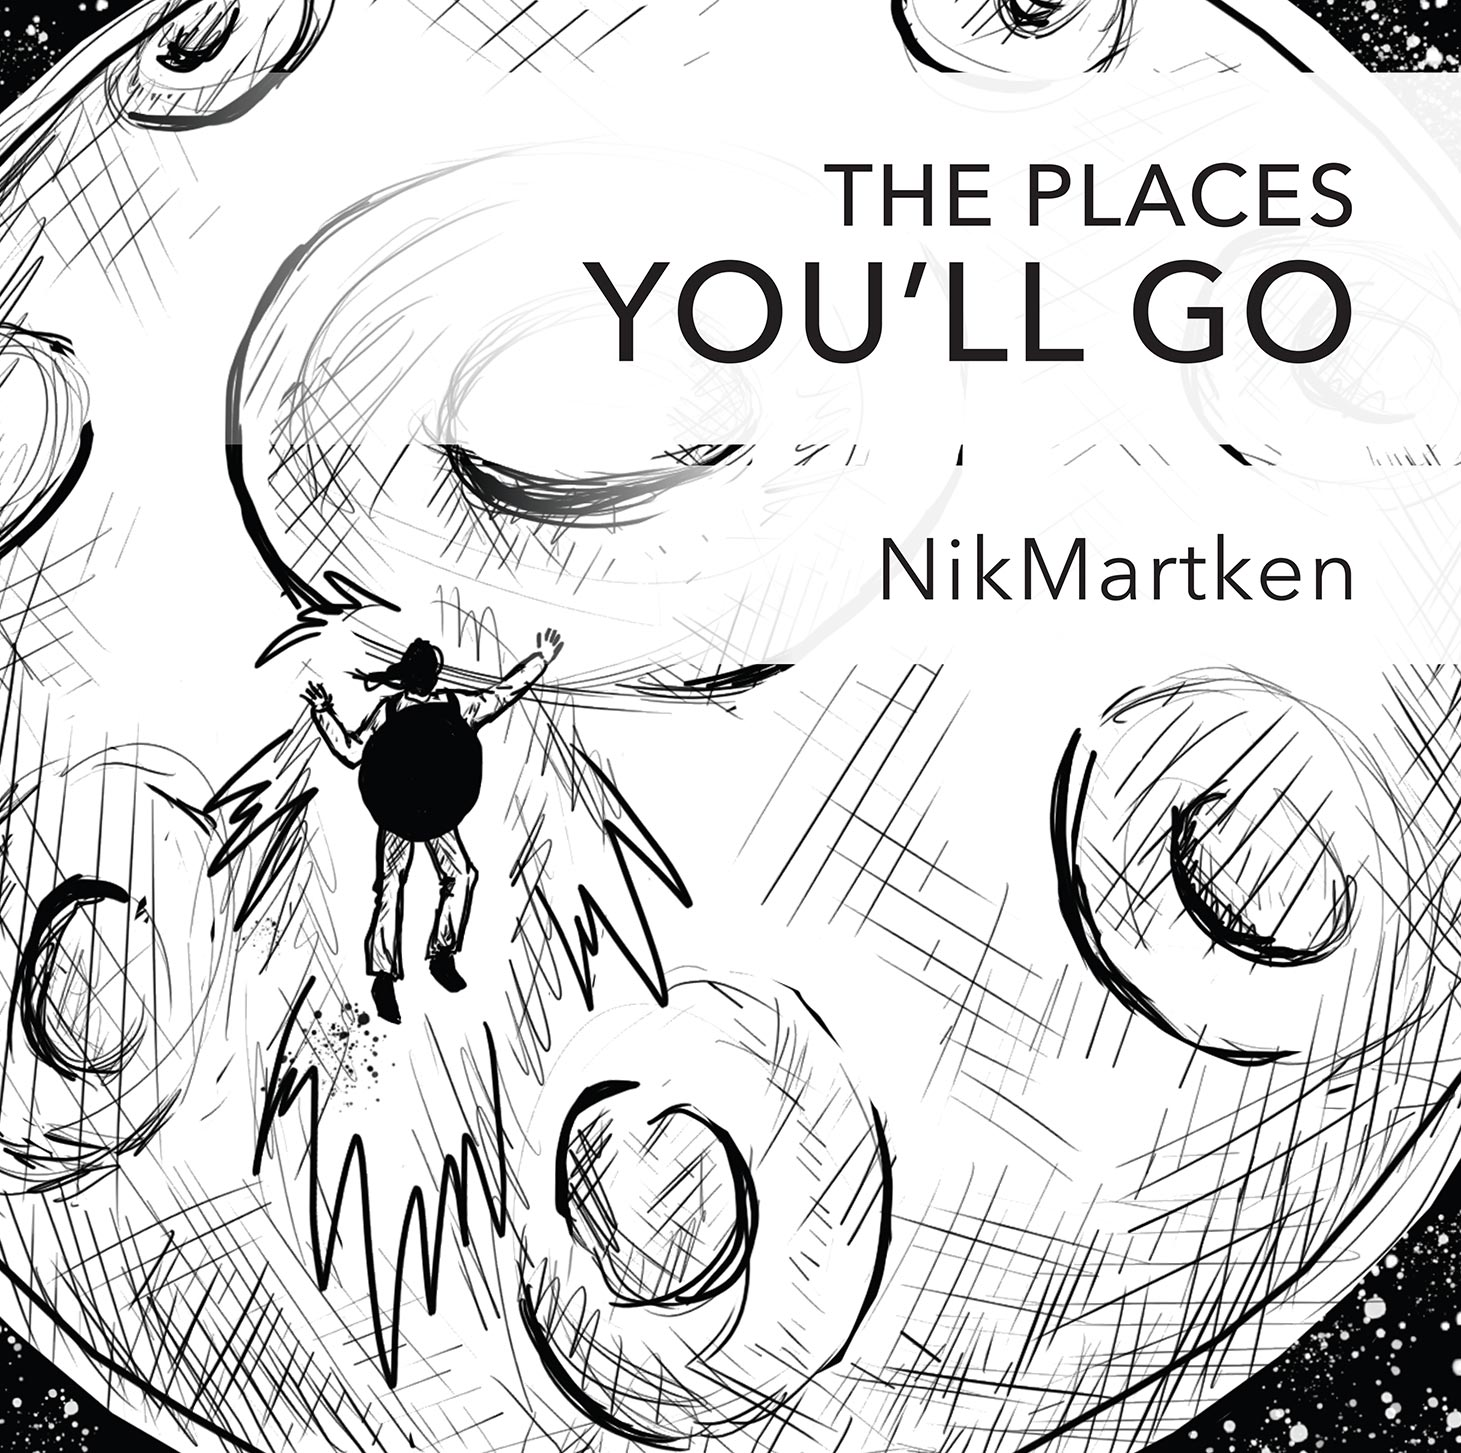 NikMartken - The Places You'll Go (EP)